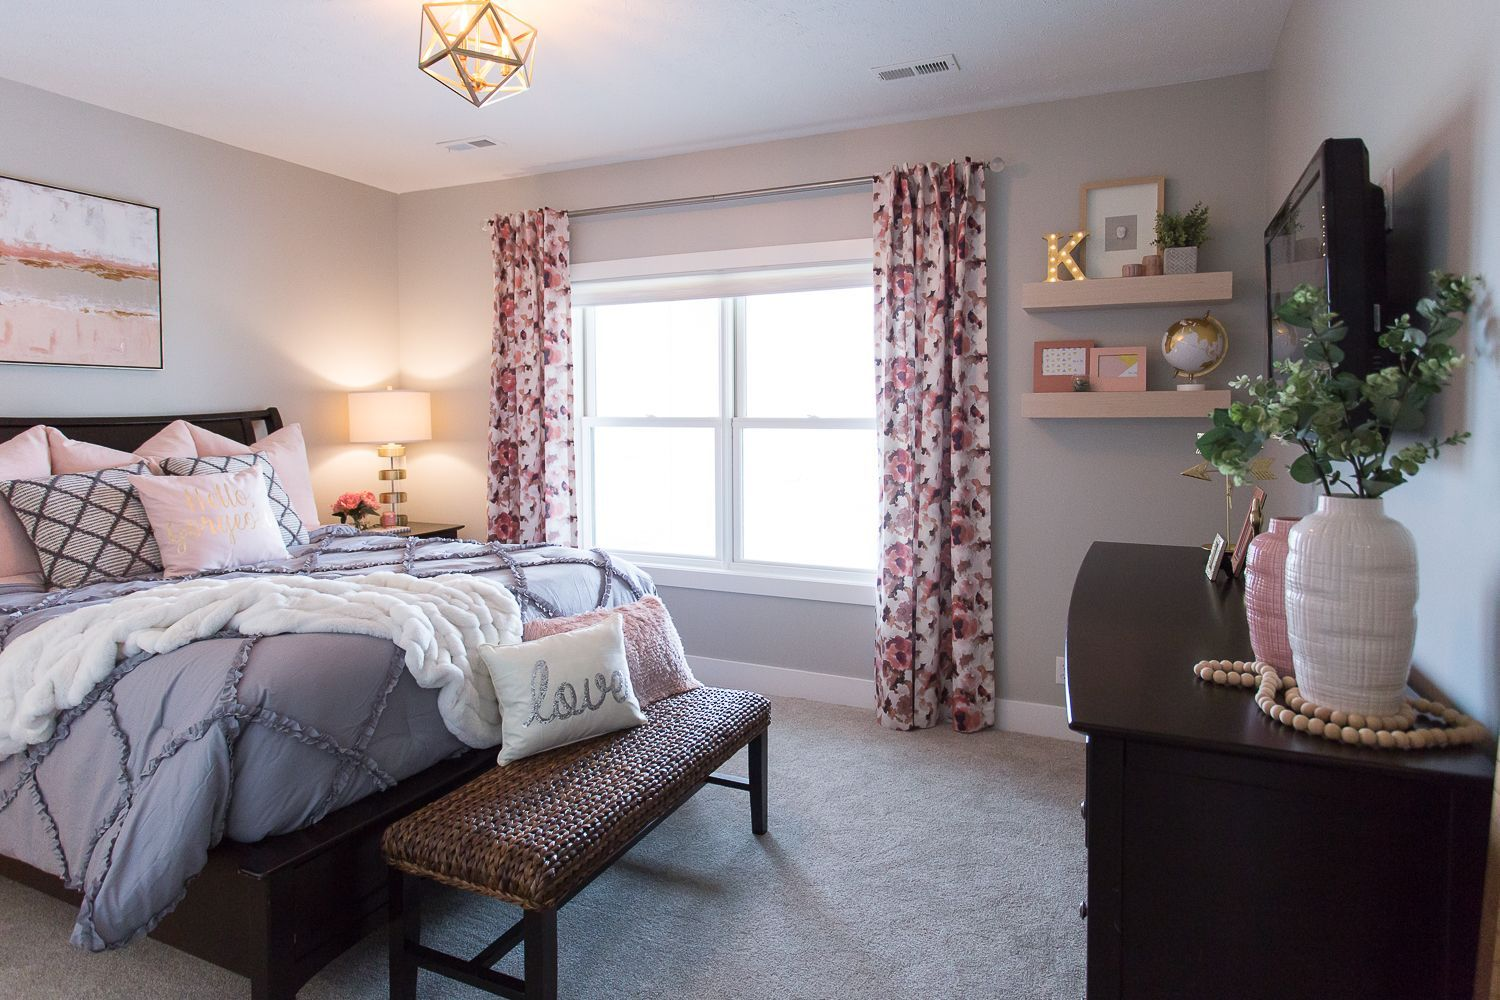 Teenage Girl S Soft Pink Grey And Cream Bedroom Sophisticated Elegant And Something This 13 Year O Pink Bedroom Decor Pink Bedroom Walls Pink Bedroom Design